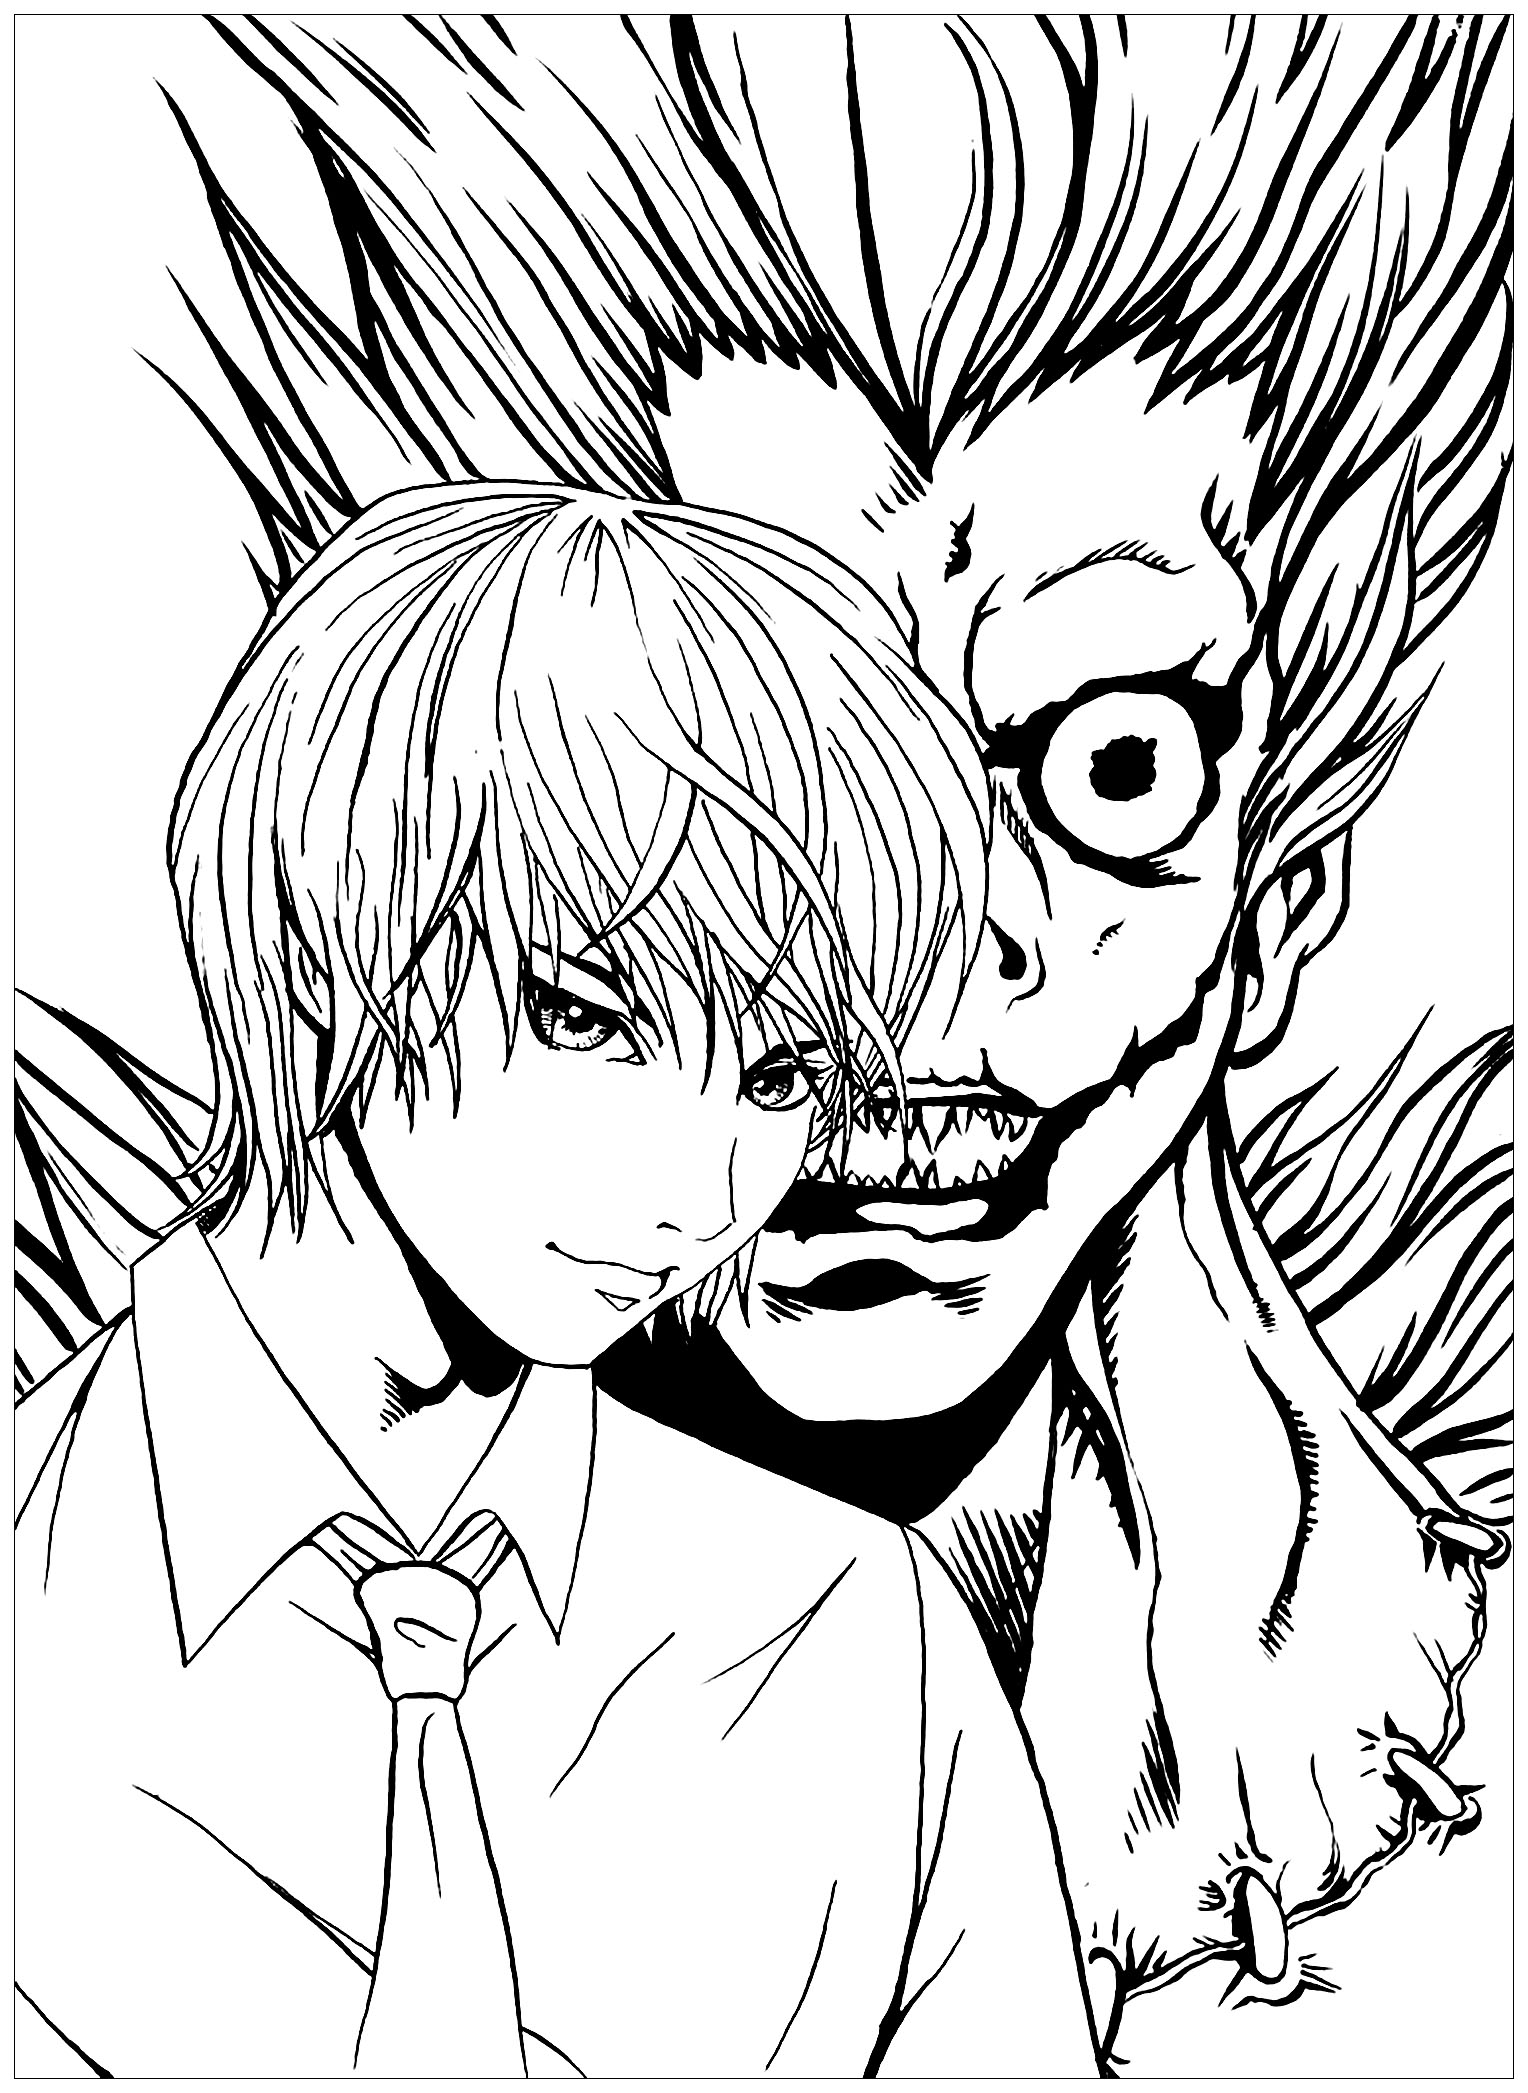 Free Death note coloring page to download, for children